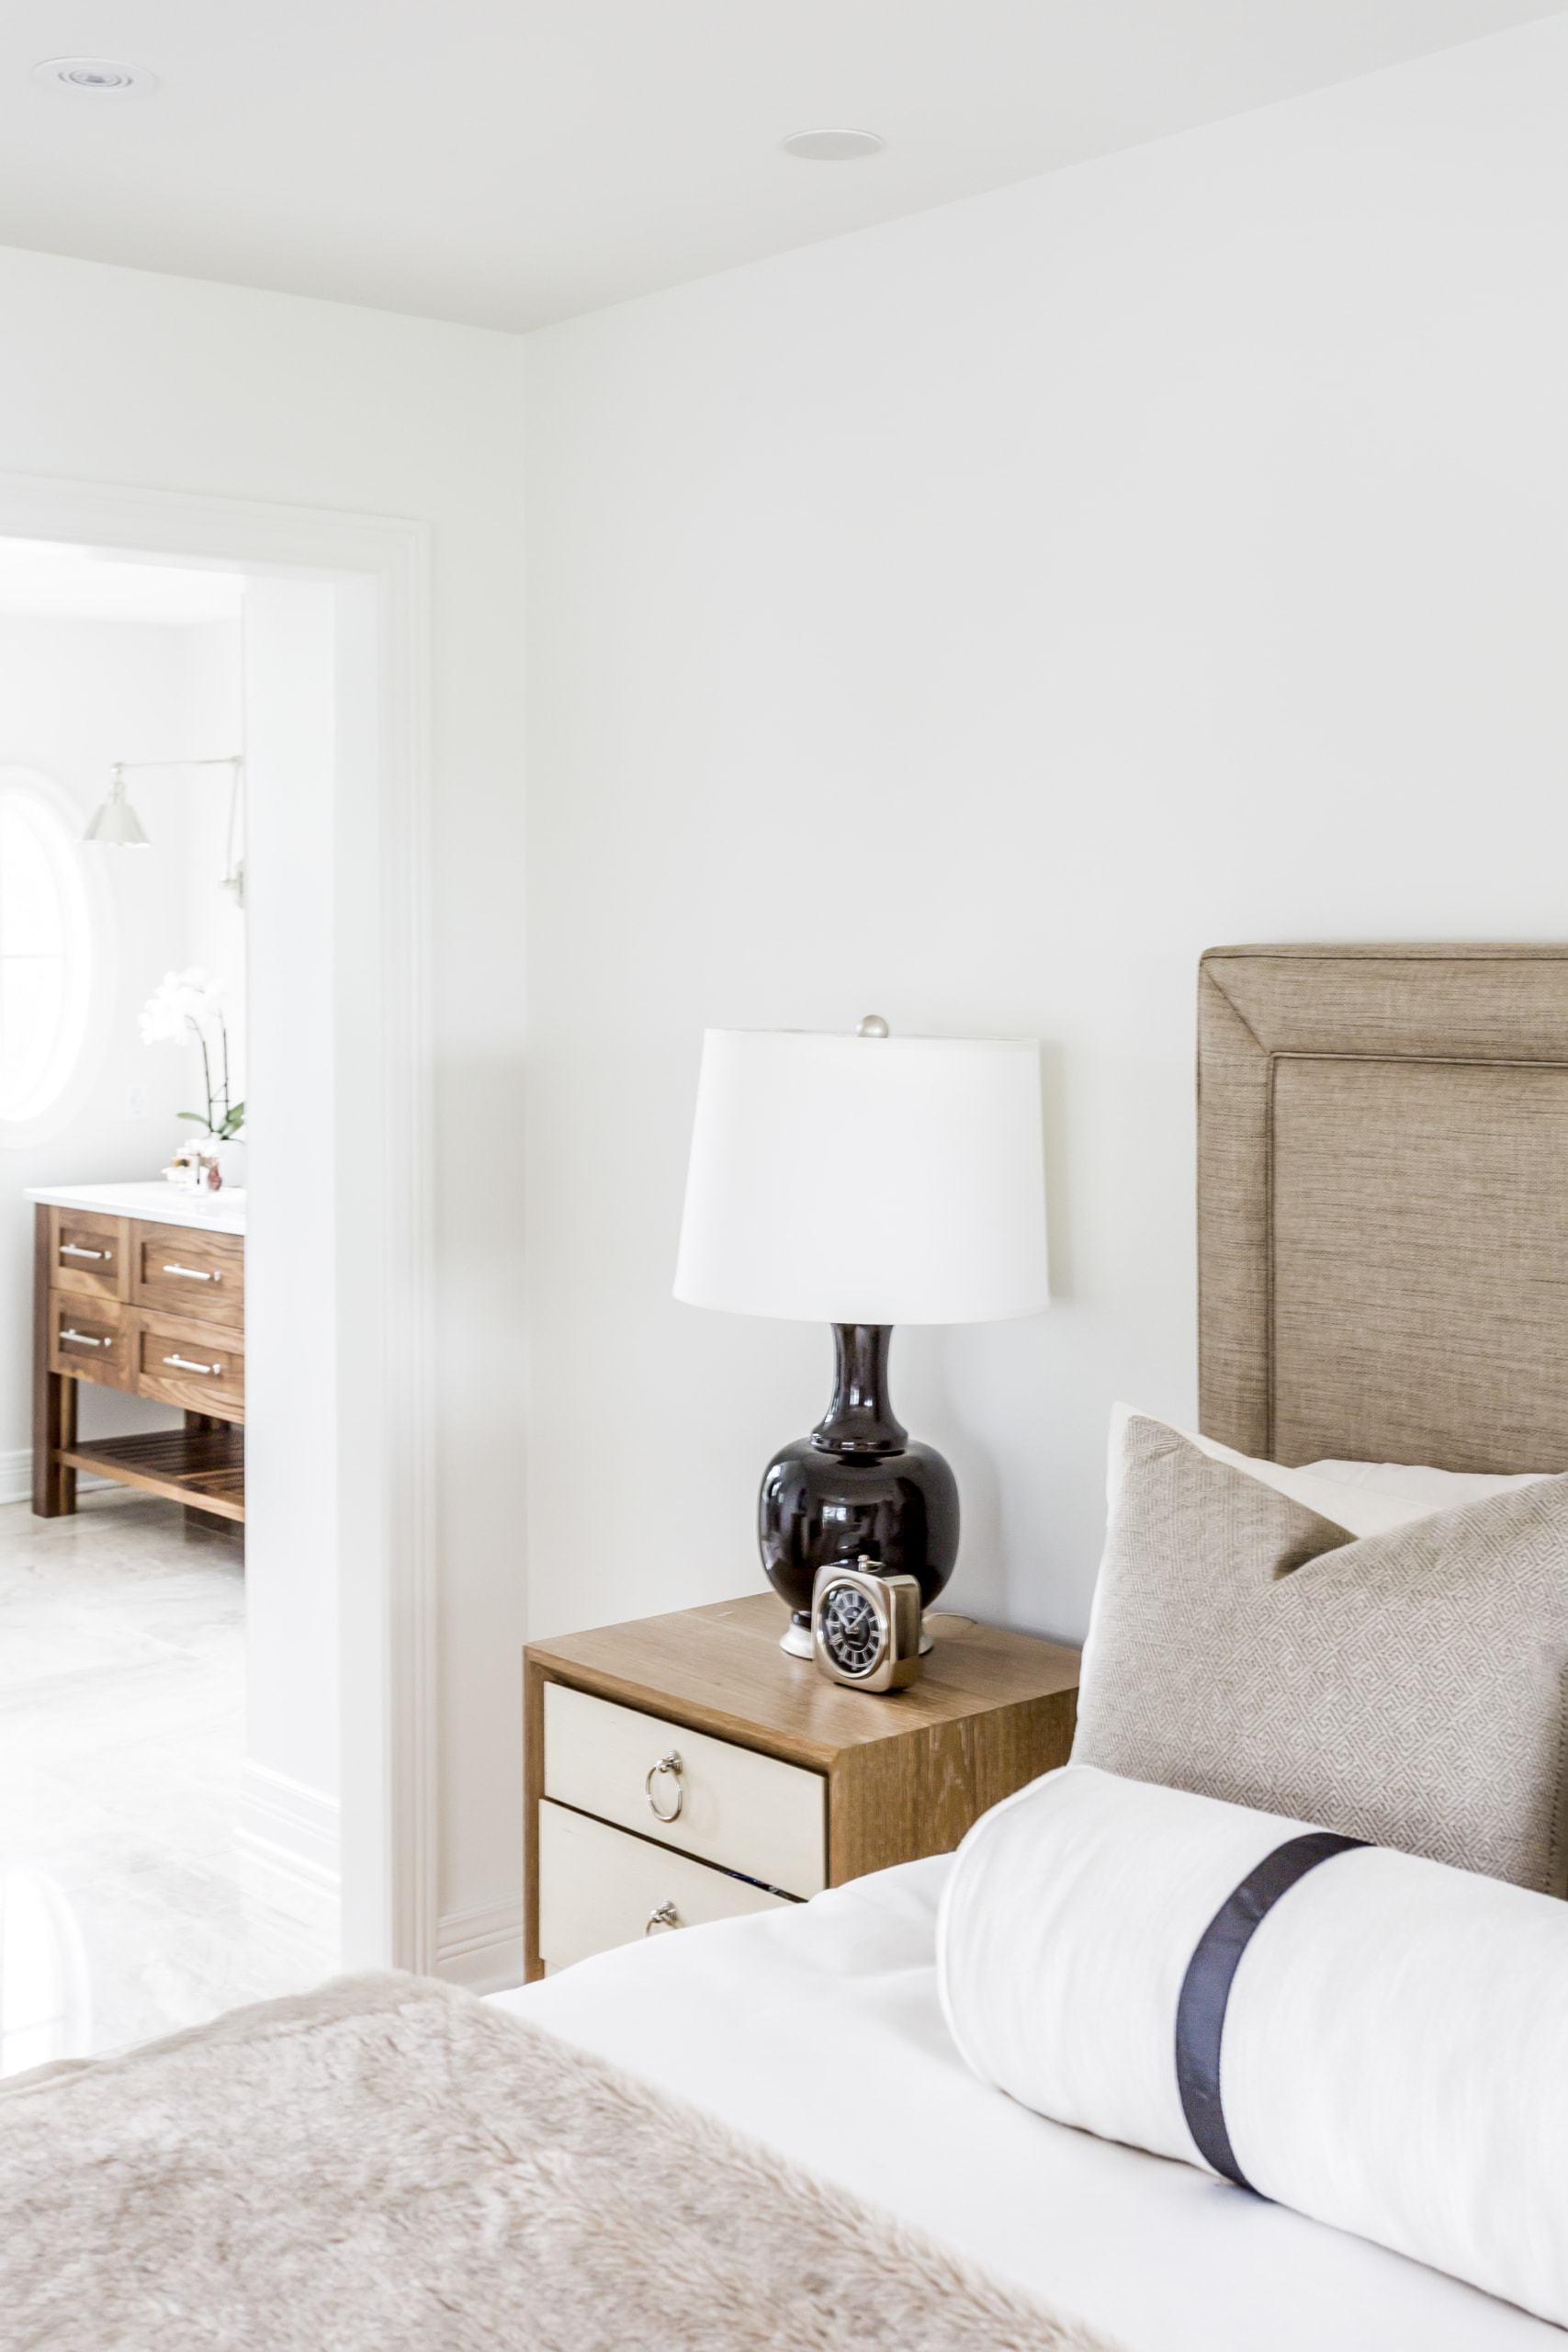 Lamp on an bedside table inside the master bedroom